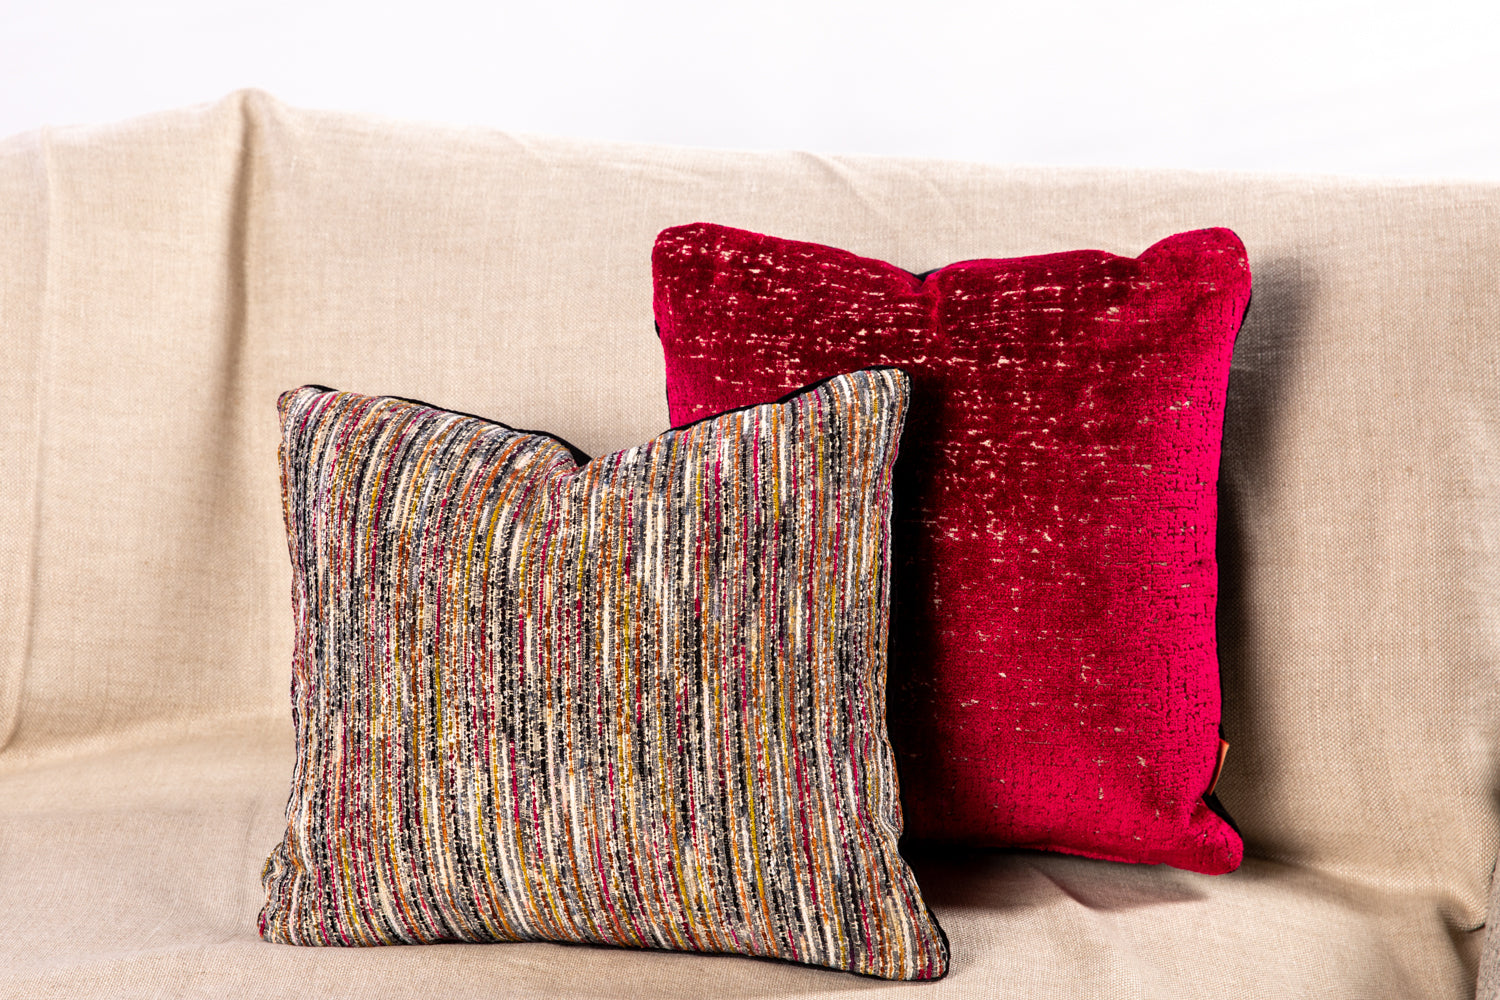 ffabb toss pillows Maxwell fabrics cut velvet